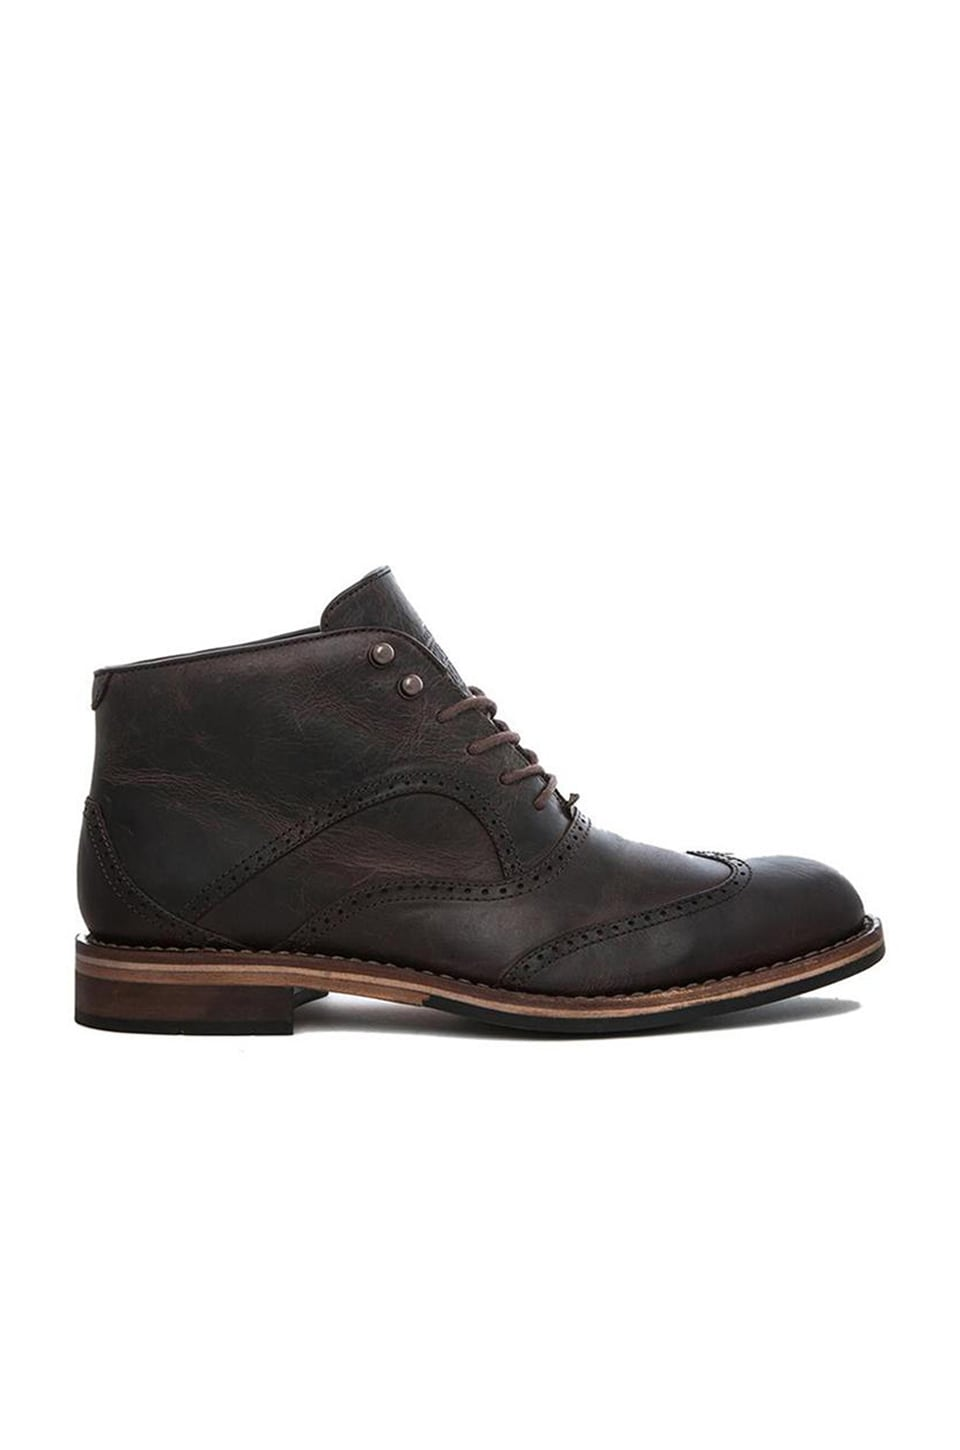 Wolverine 1000 Mile Wesley Wingtip Chukka in Brown